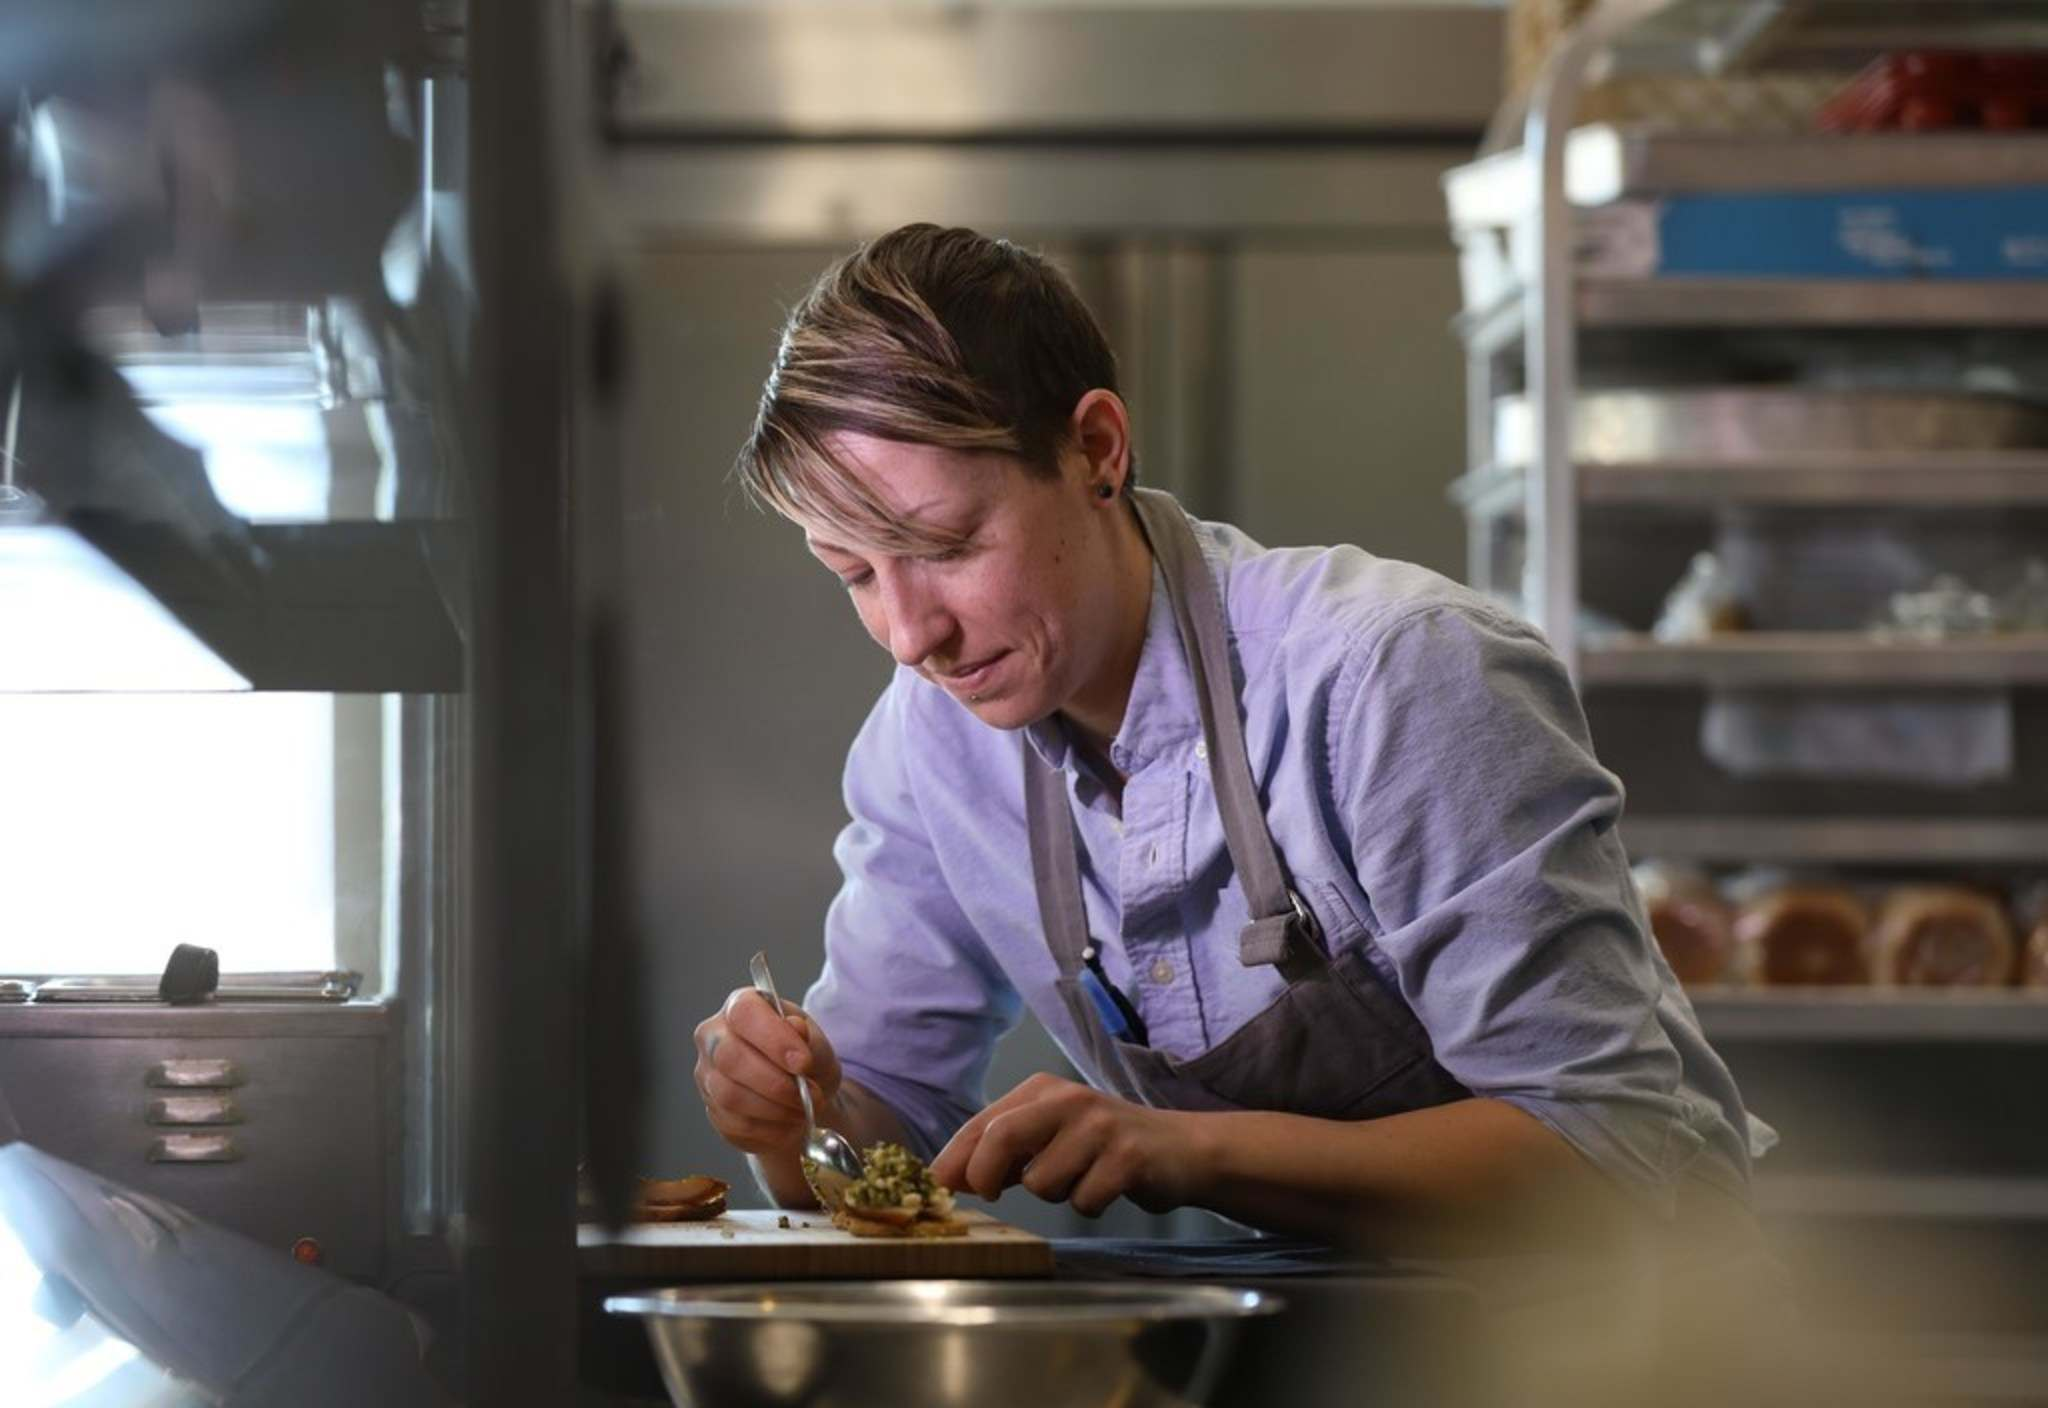 Jessica Young, chef de cuisine at Diversity Food Services, is one of the Push Project's chefs. (Ruth Bonneville / Winnipeg Free Press)